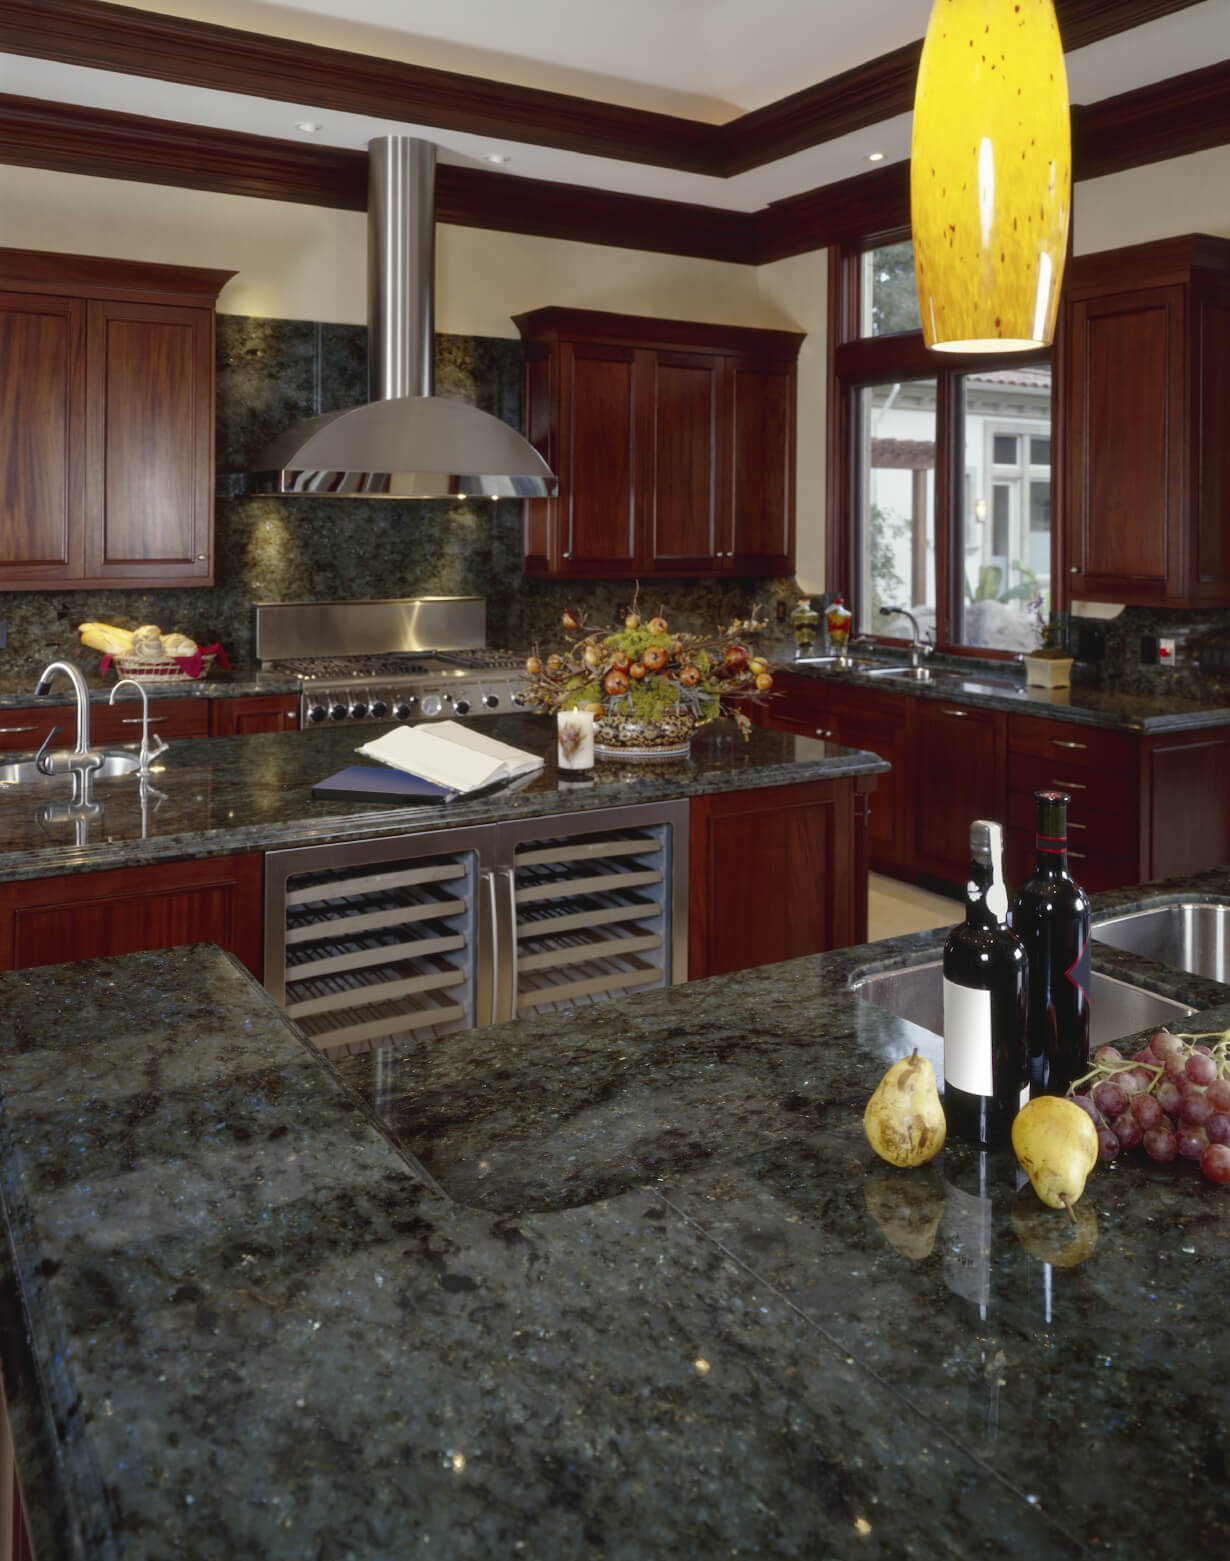 40 magnificent kitchen designs with dark cabinets green kitchen countertops Rich dark green marble countertops and dark cherry wood fill this luxurious kitchen featuring brushed aluminum